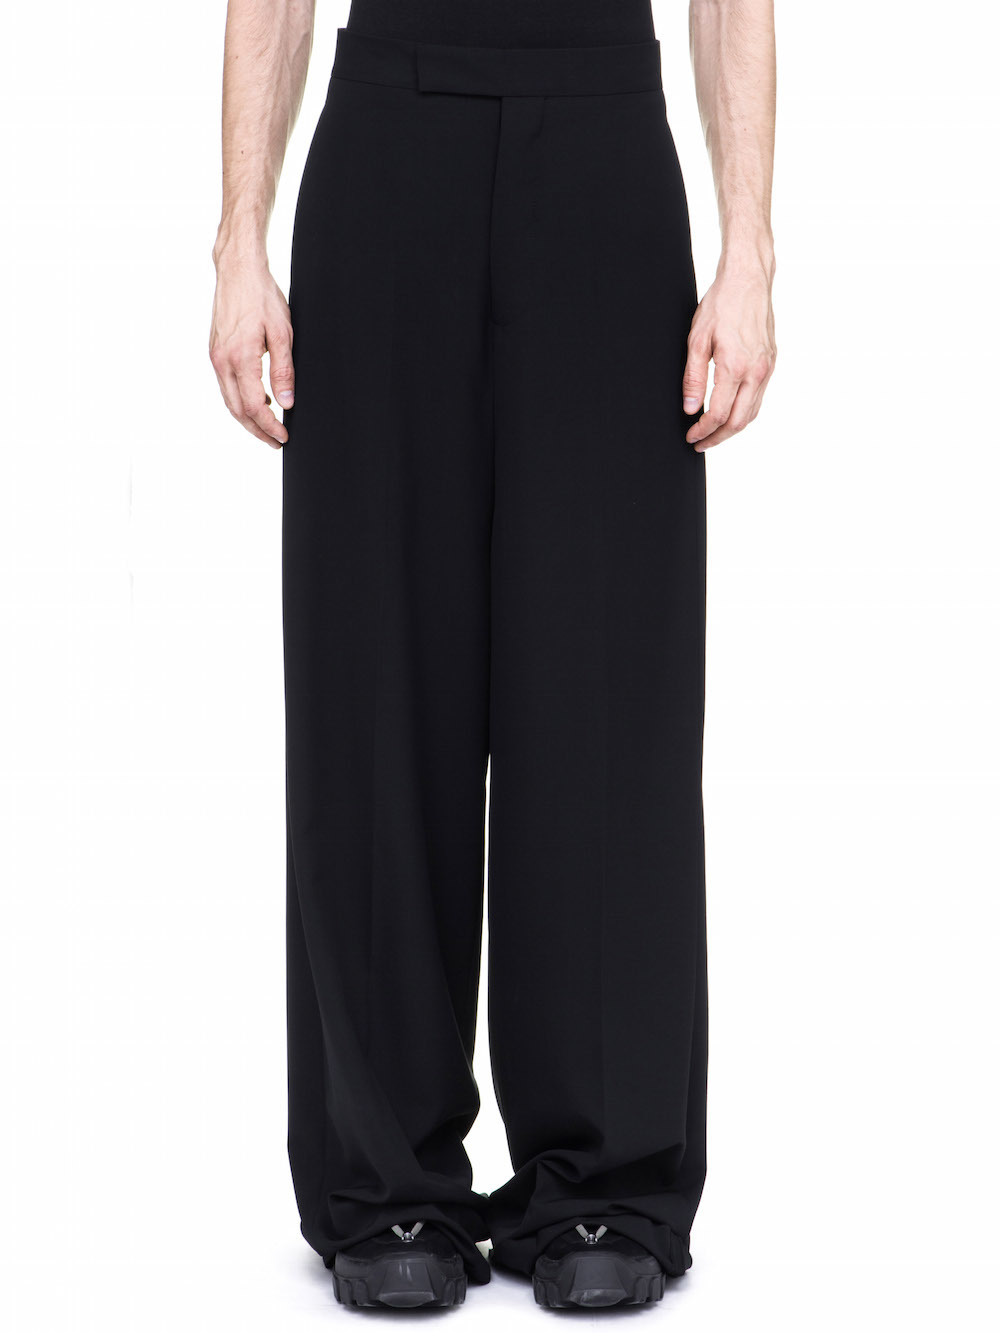 RICK OWENS OFF-THE-RUNWAY VISCONTIS TROUSERS IN BLACK